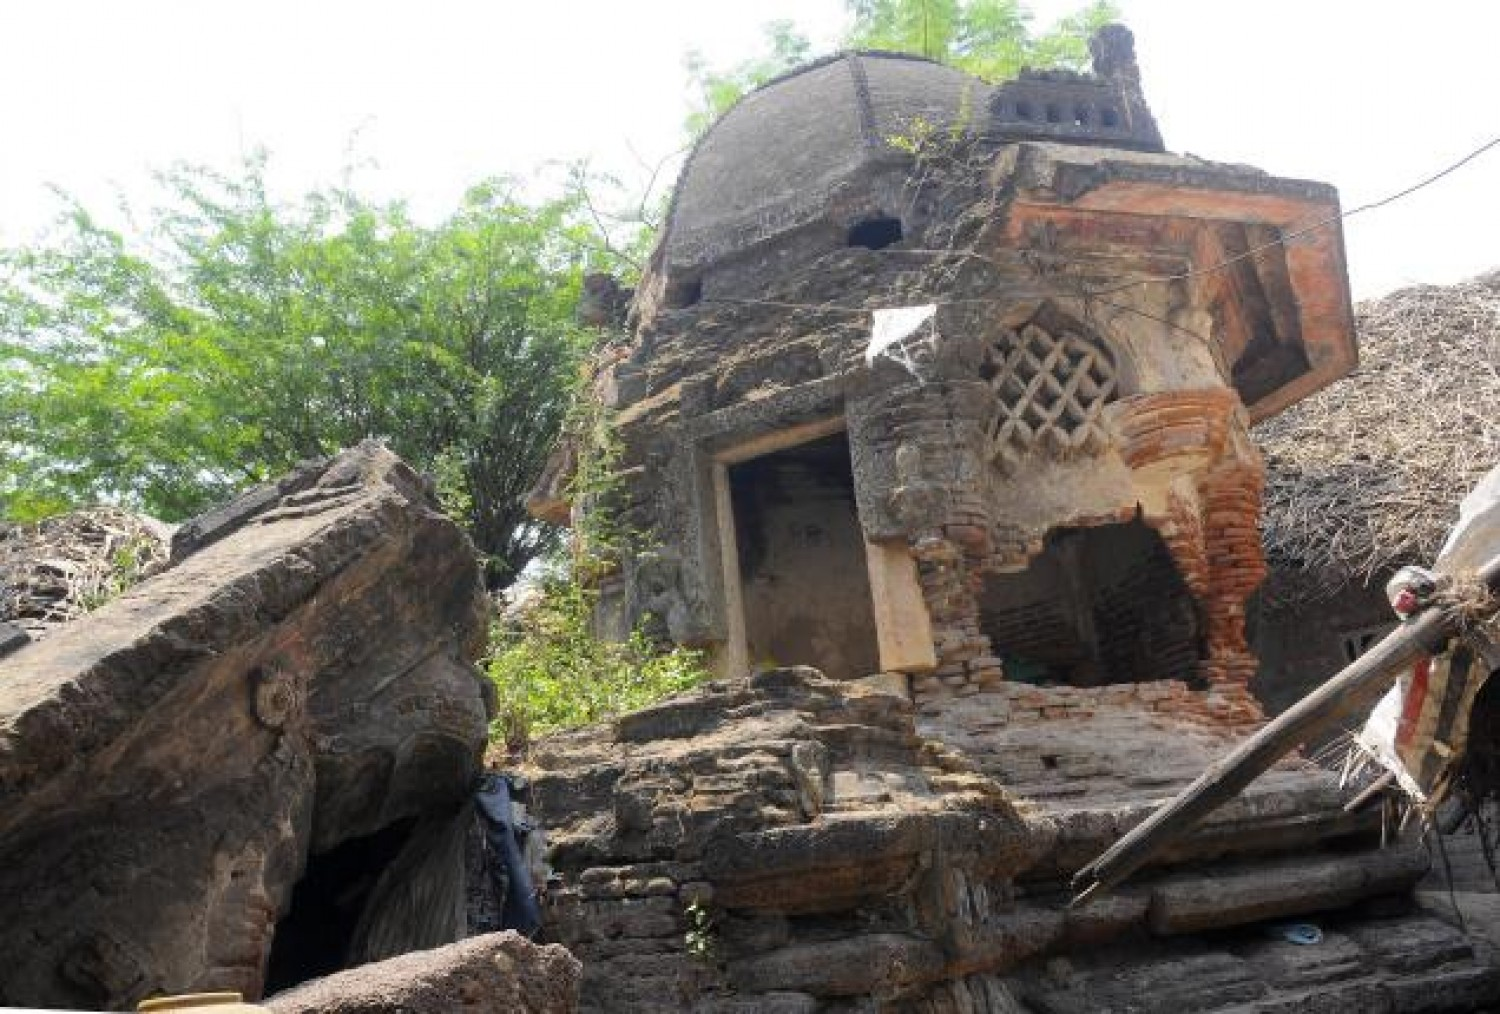 Hindu temples on the road to ruin